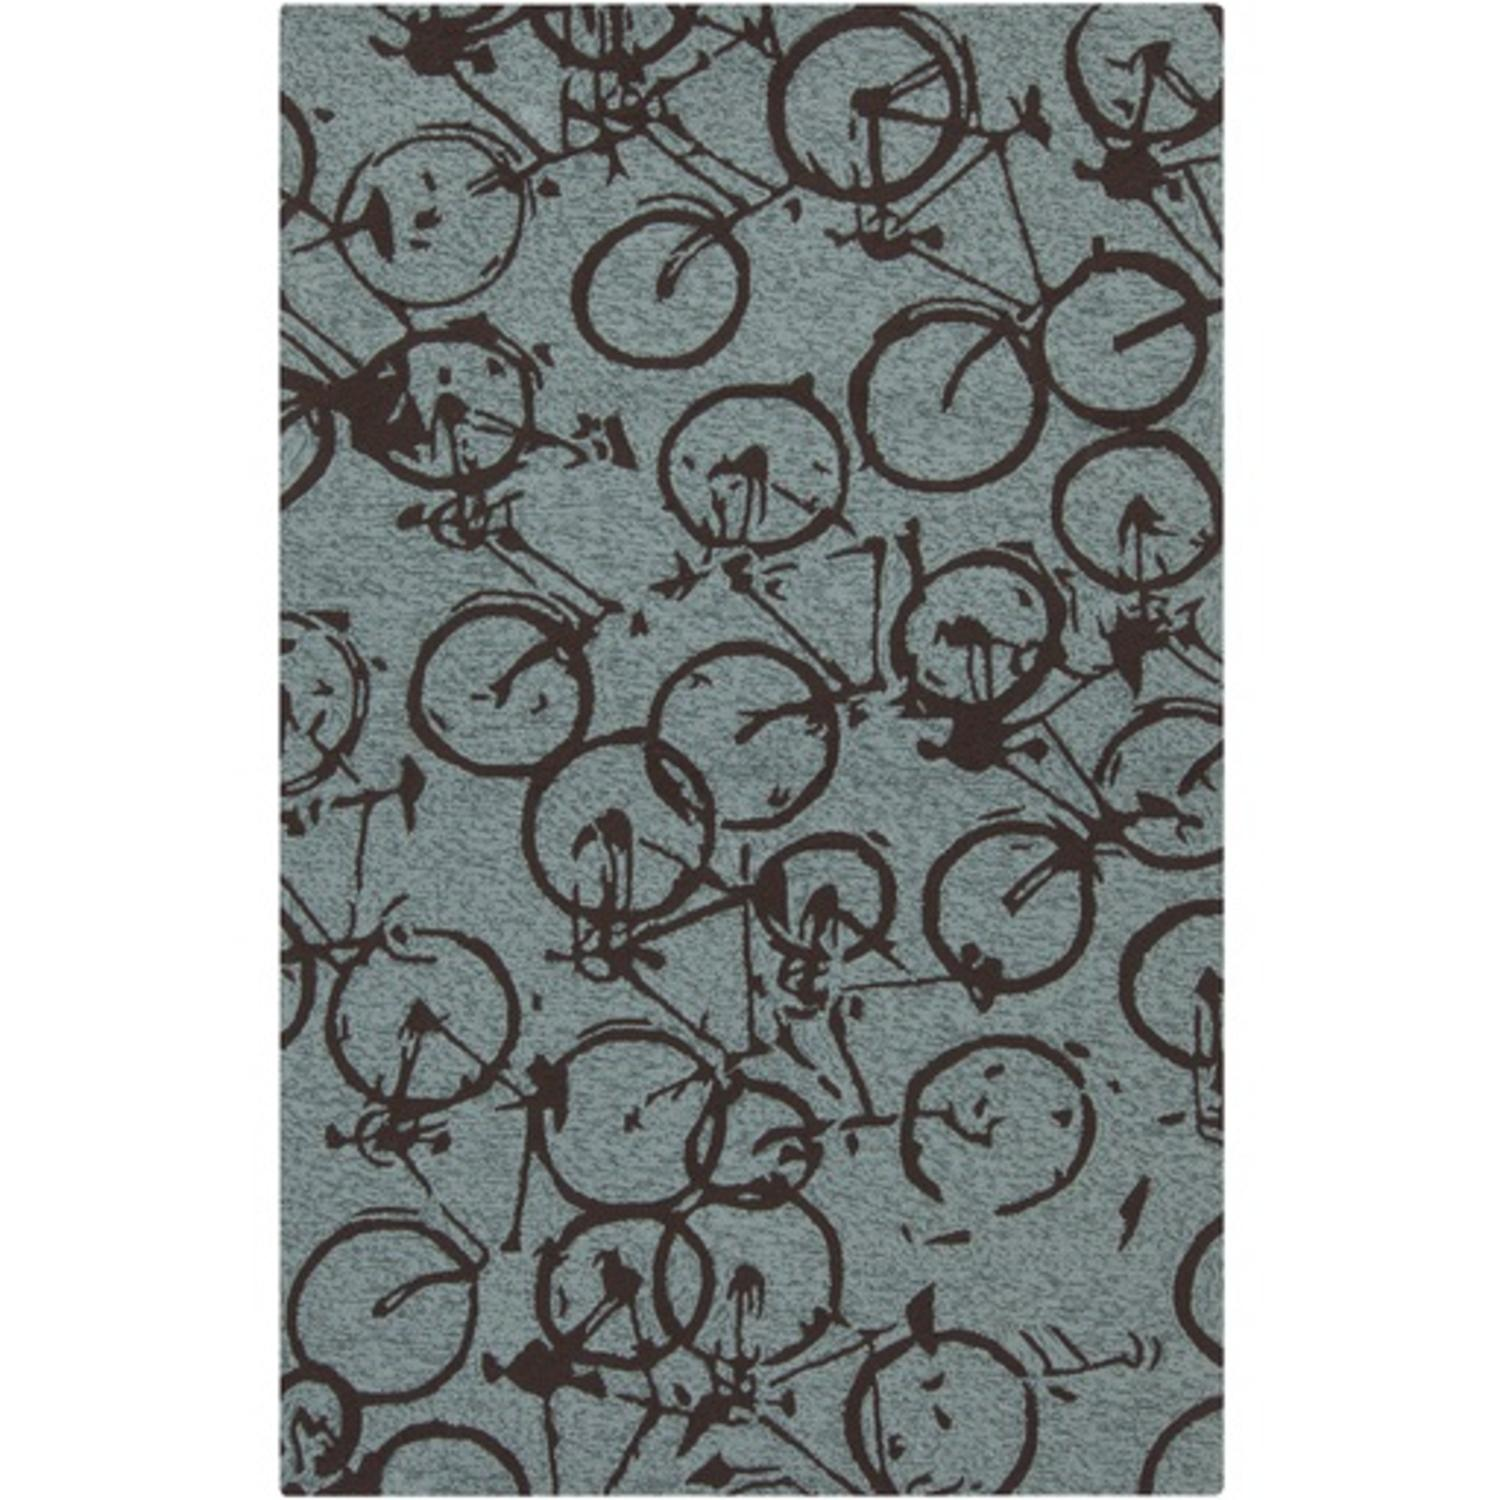 9' x 12' On The Go Bicycle Mossy Green and Espresso Brown Hand Hooked Area Throw Rug